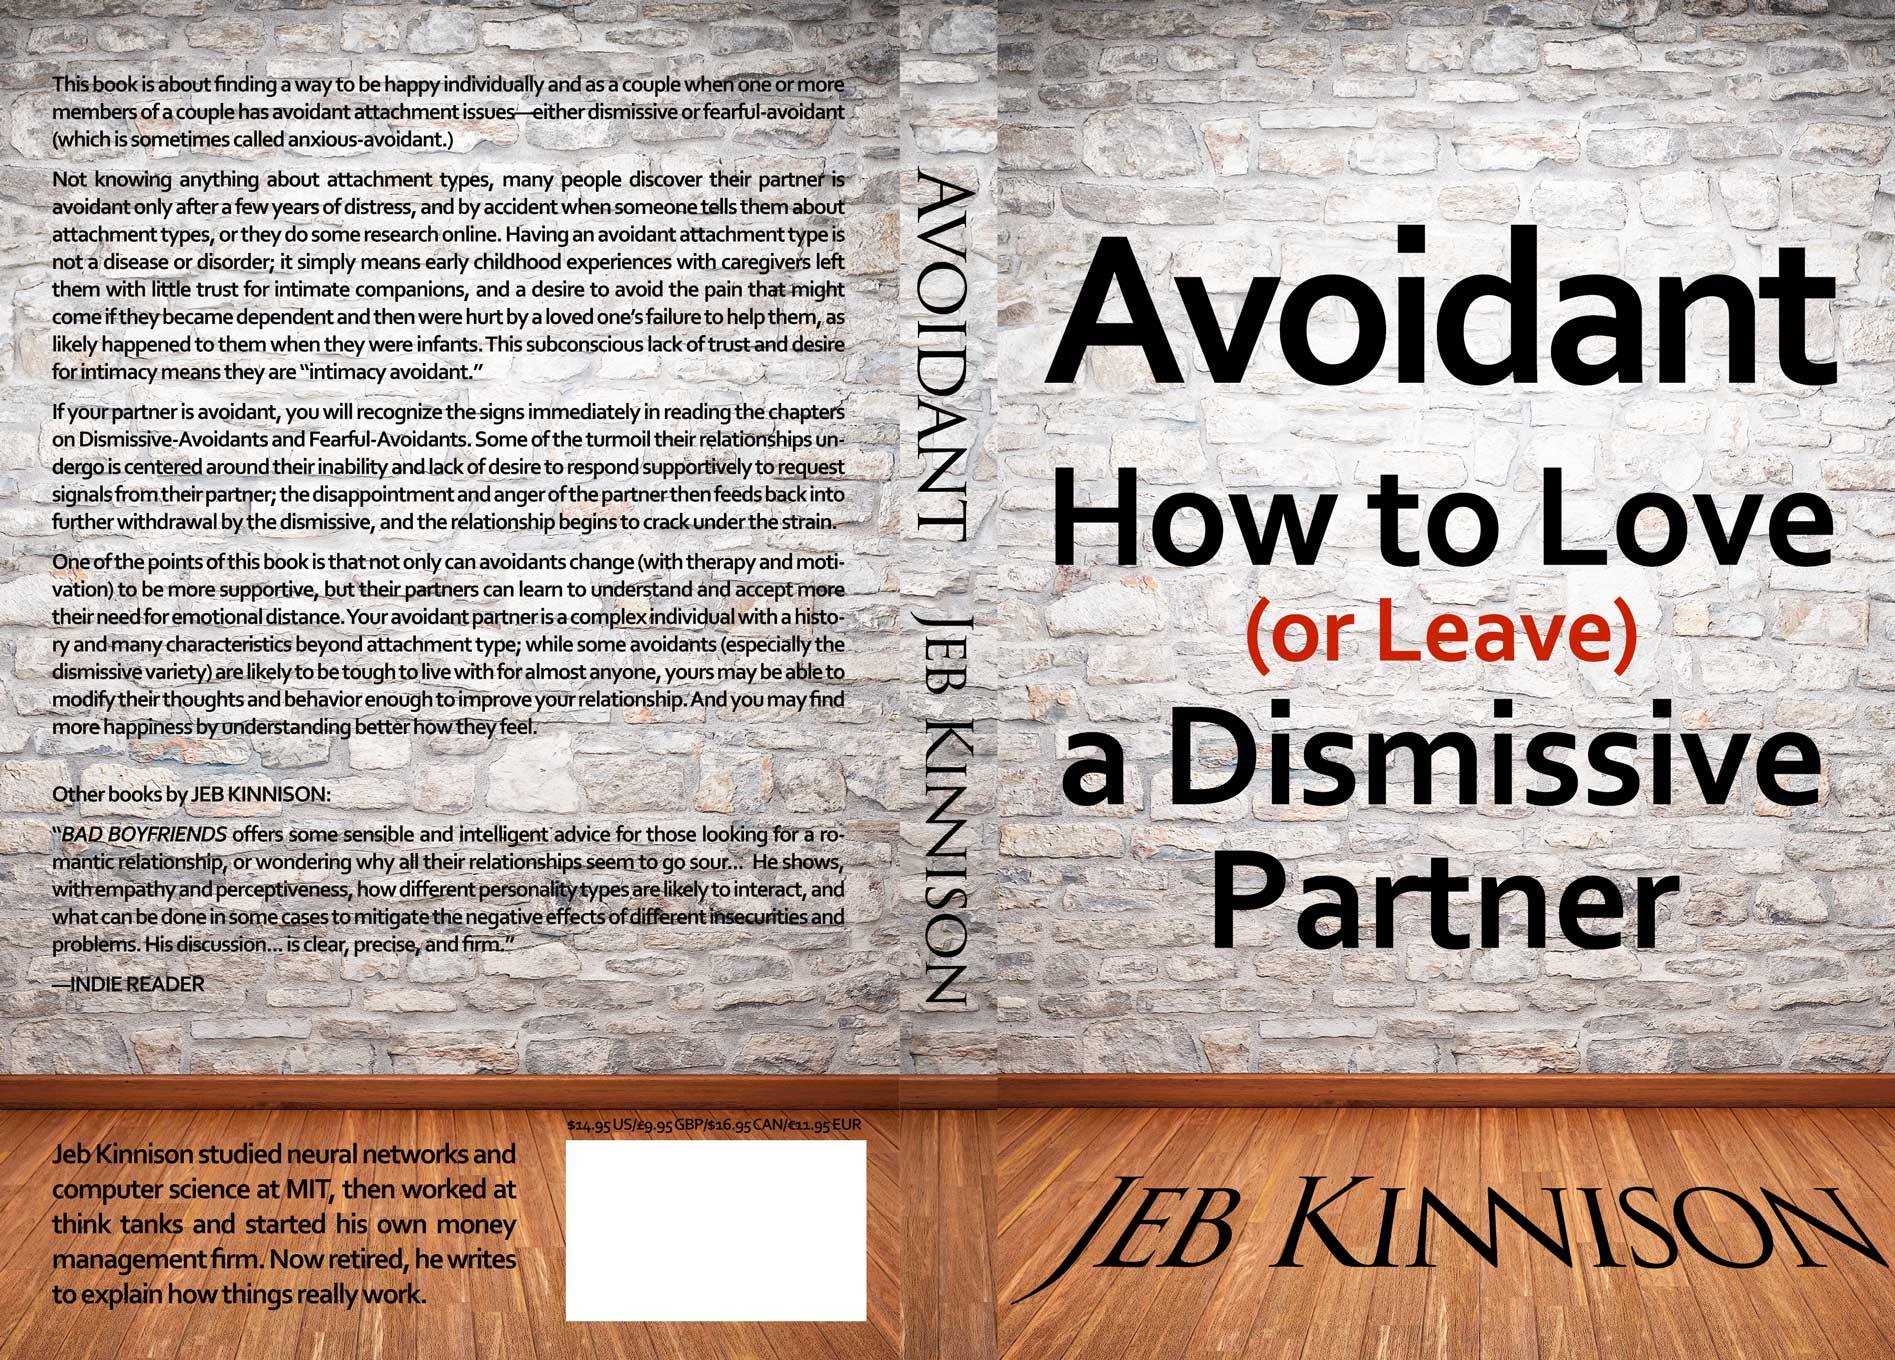 How to deal with an avoidant partner